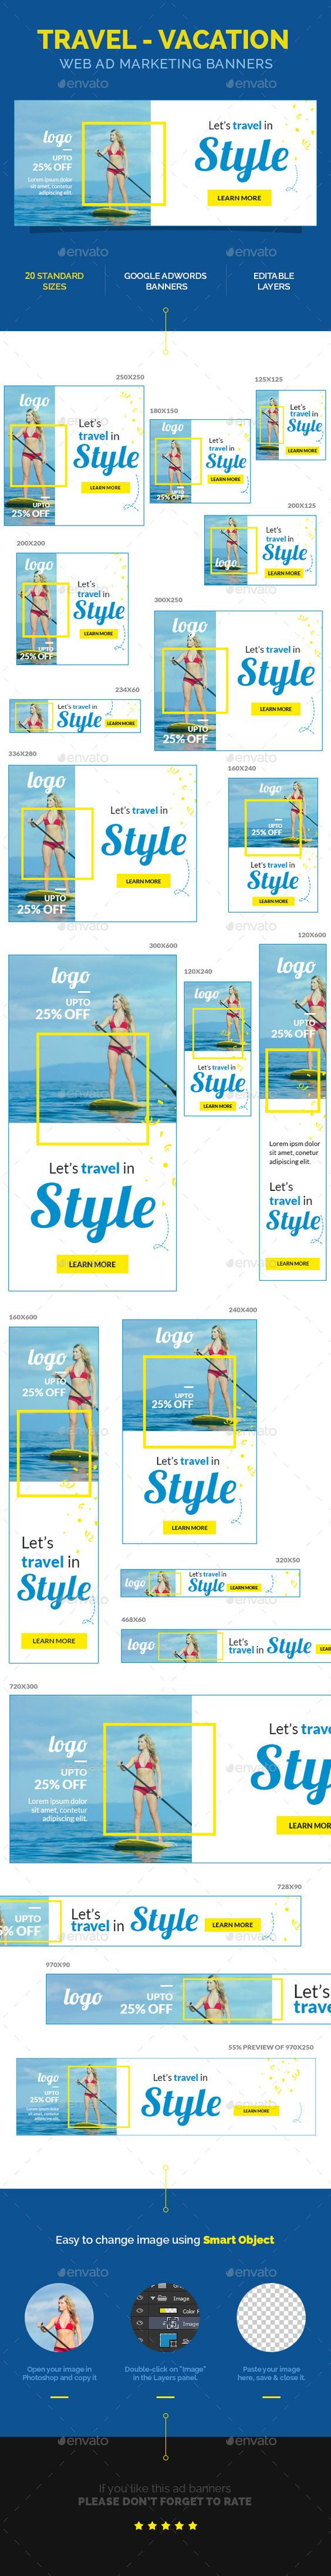 Travel - Vacation Web Ad Marketing Banners Download: http://graphicriver.net/item/travel-vacation-web-ad-marketing-banners/11022465?ref=ksioks